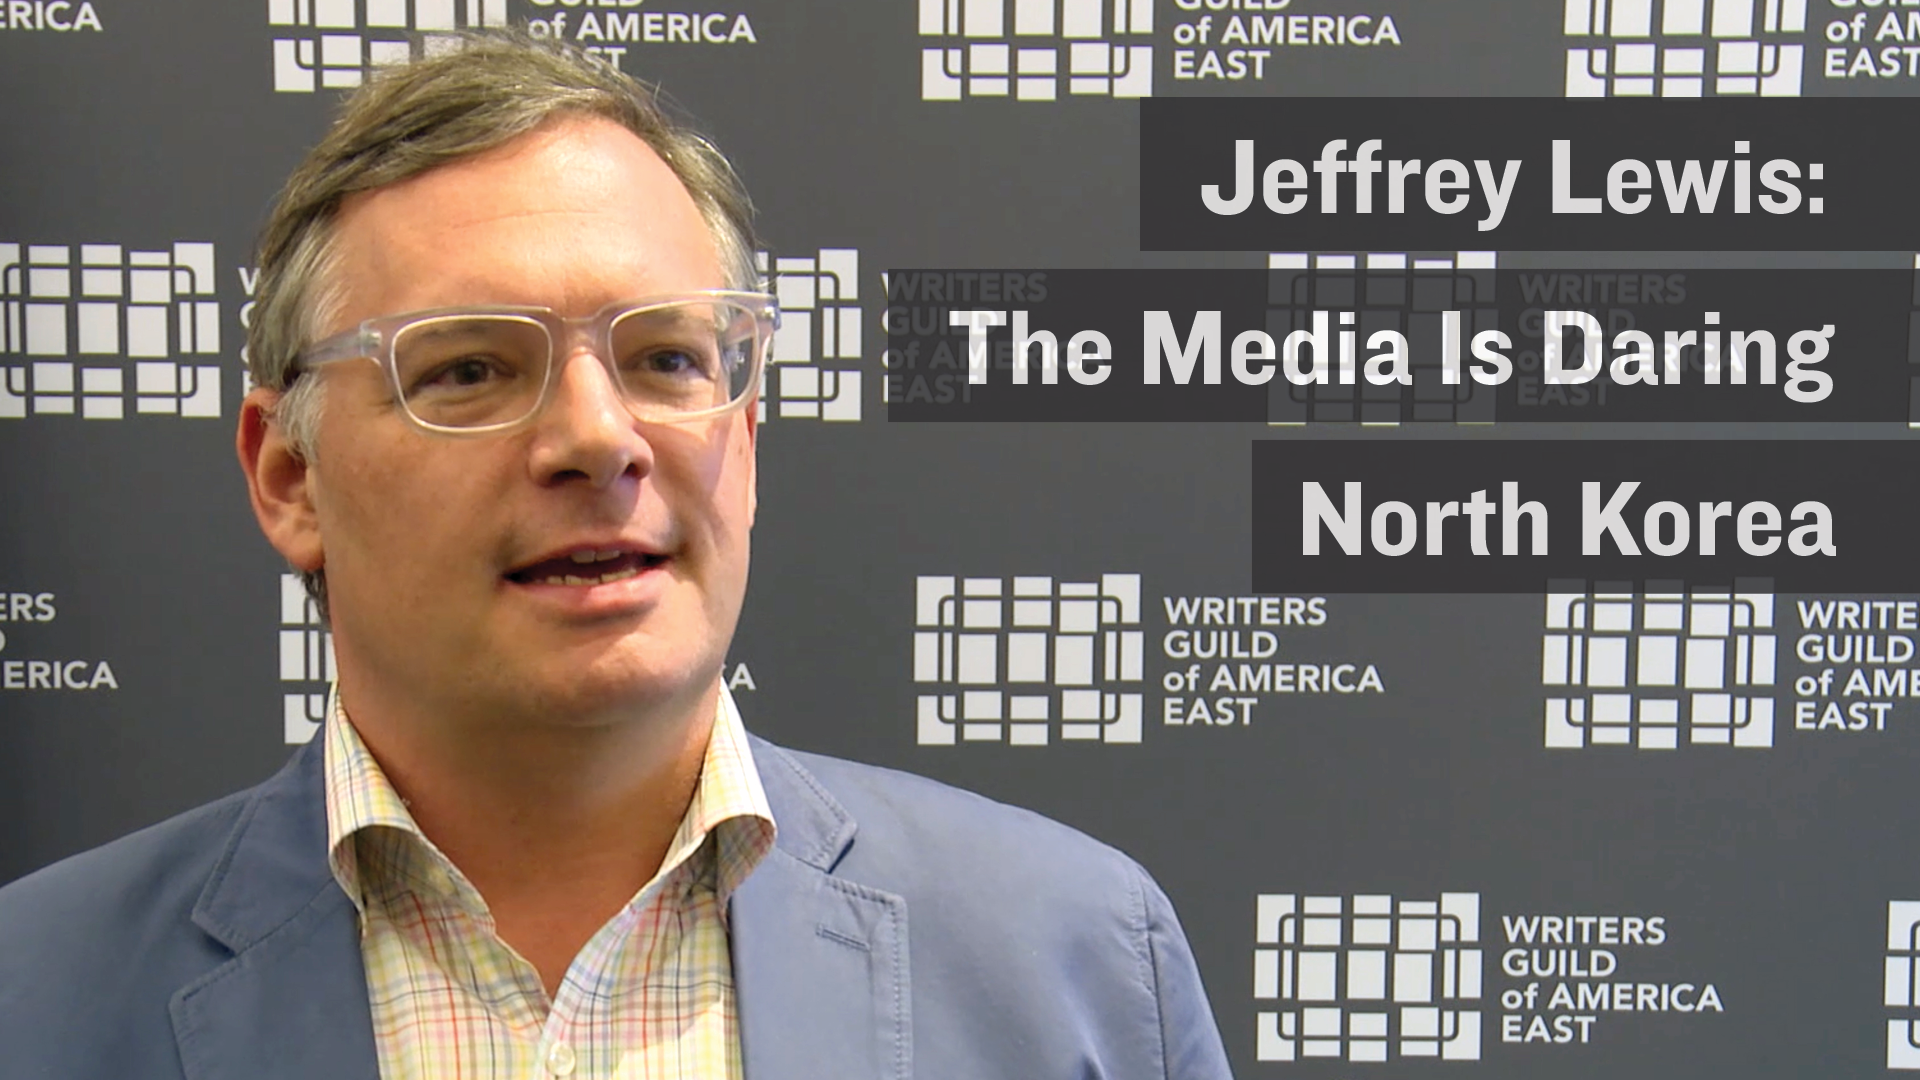 Nuclear Expert Jeffrey Lewis: The Media Is Daring North Korea